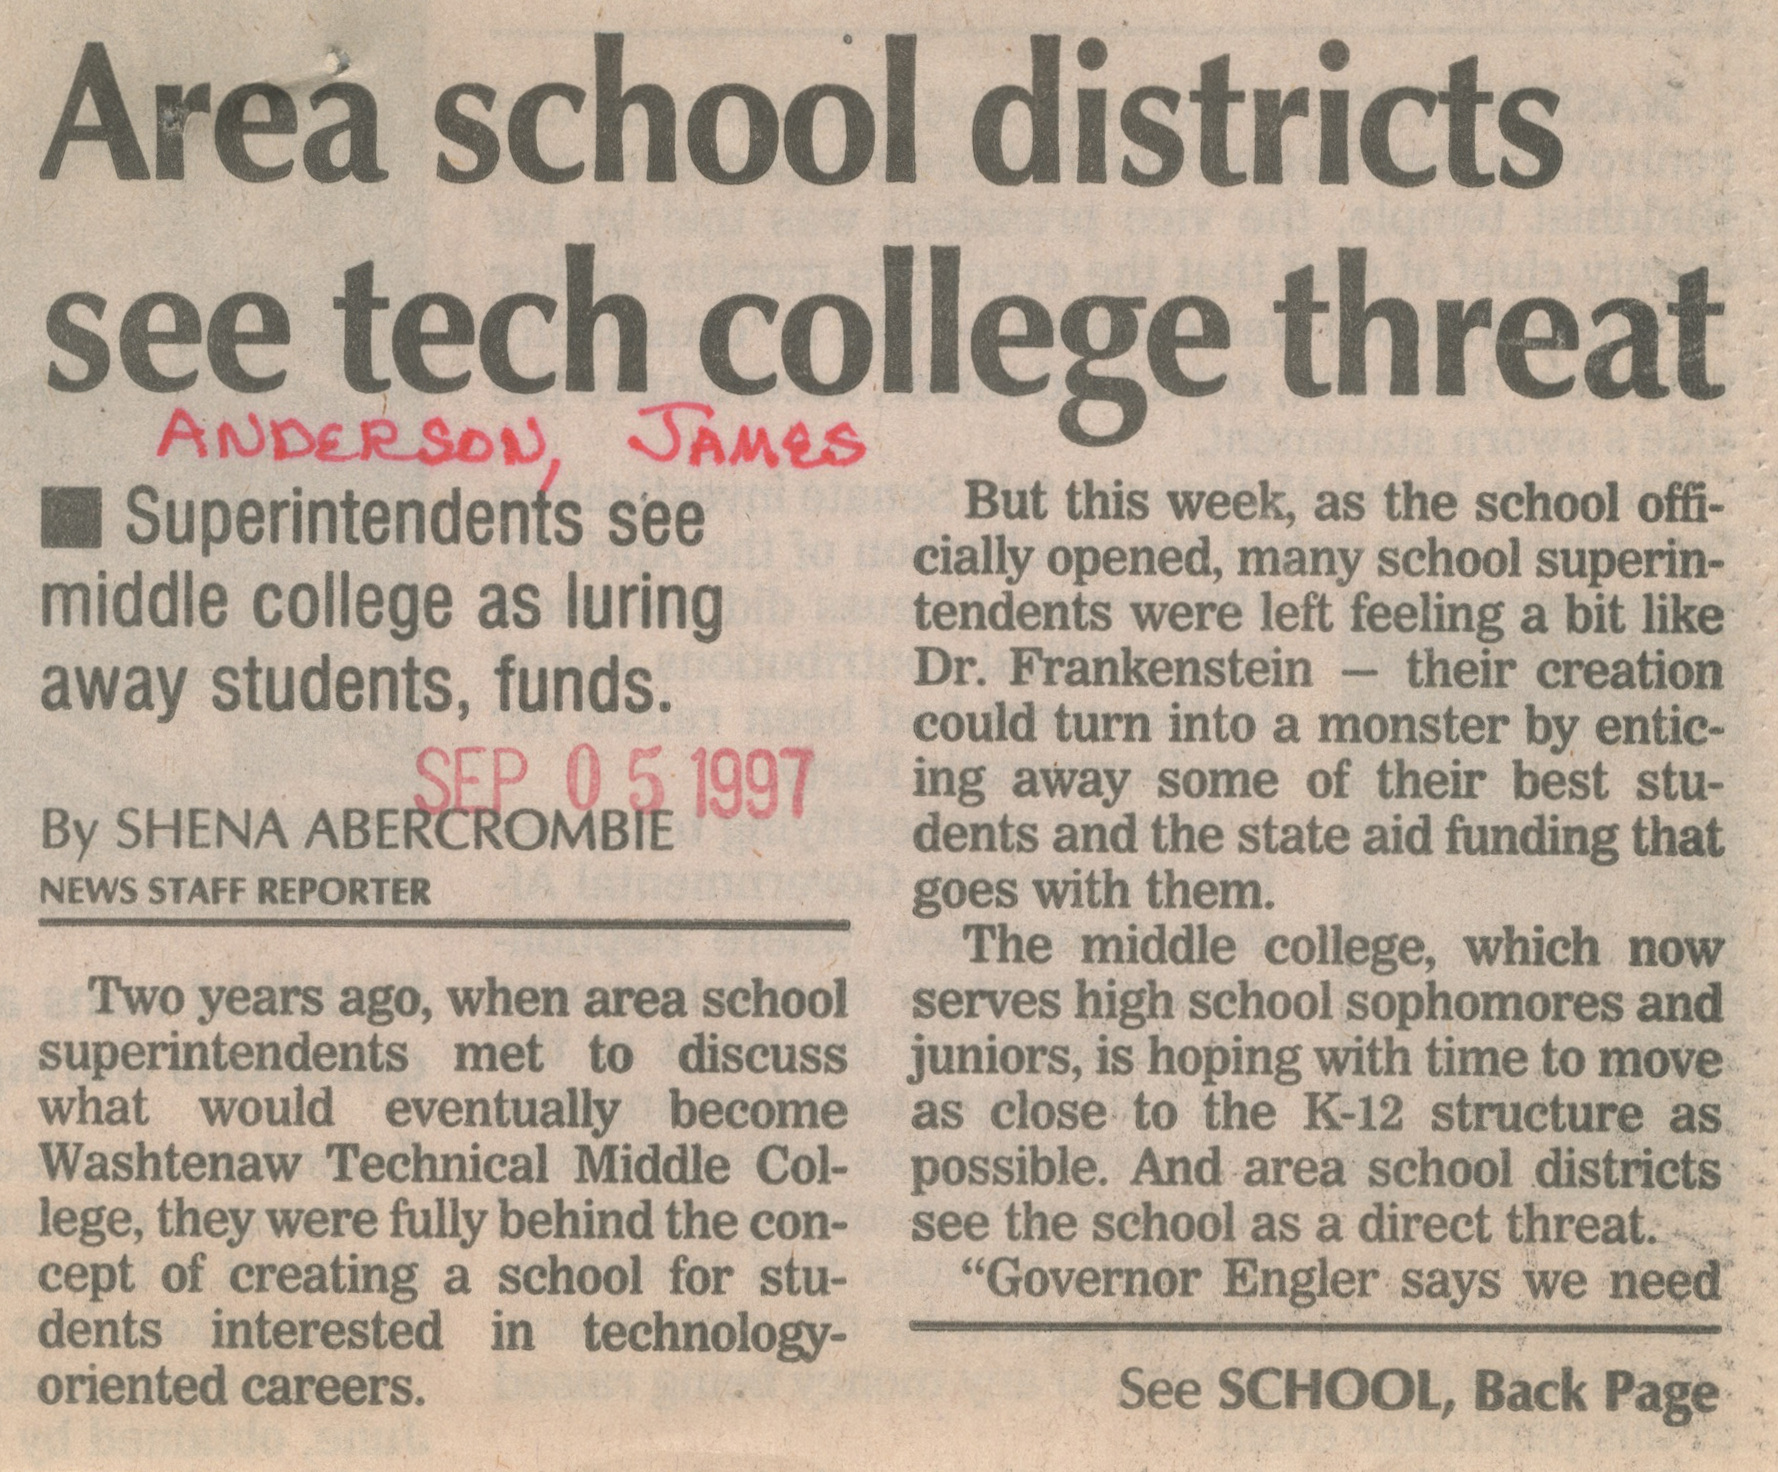 Area School Districts See Tech College Threat image